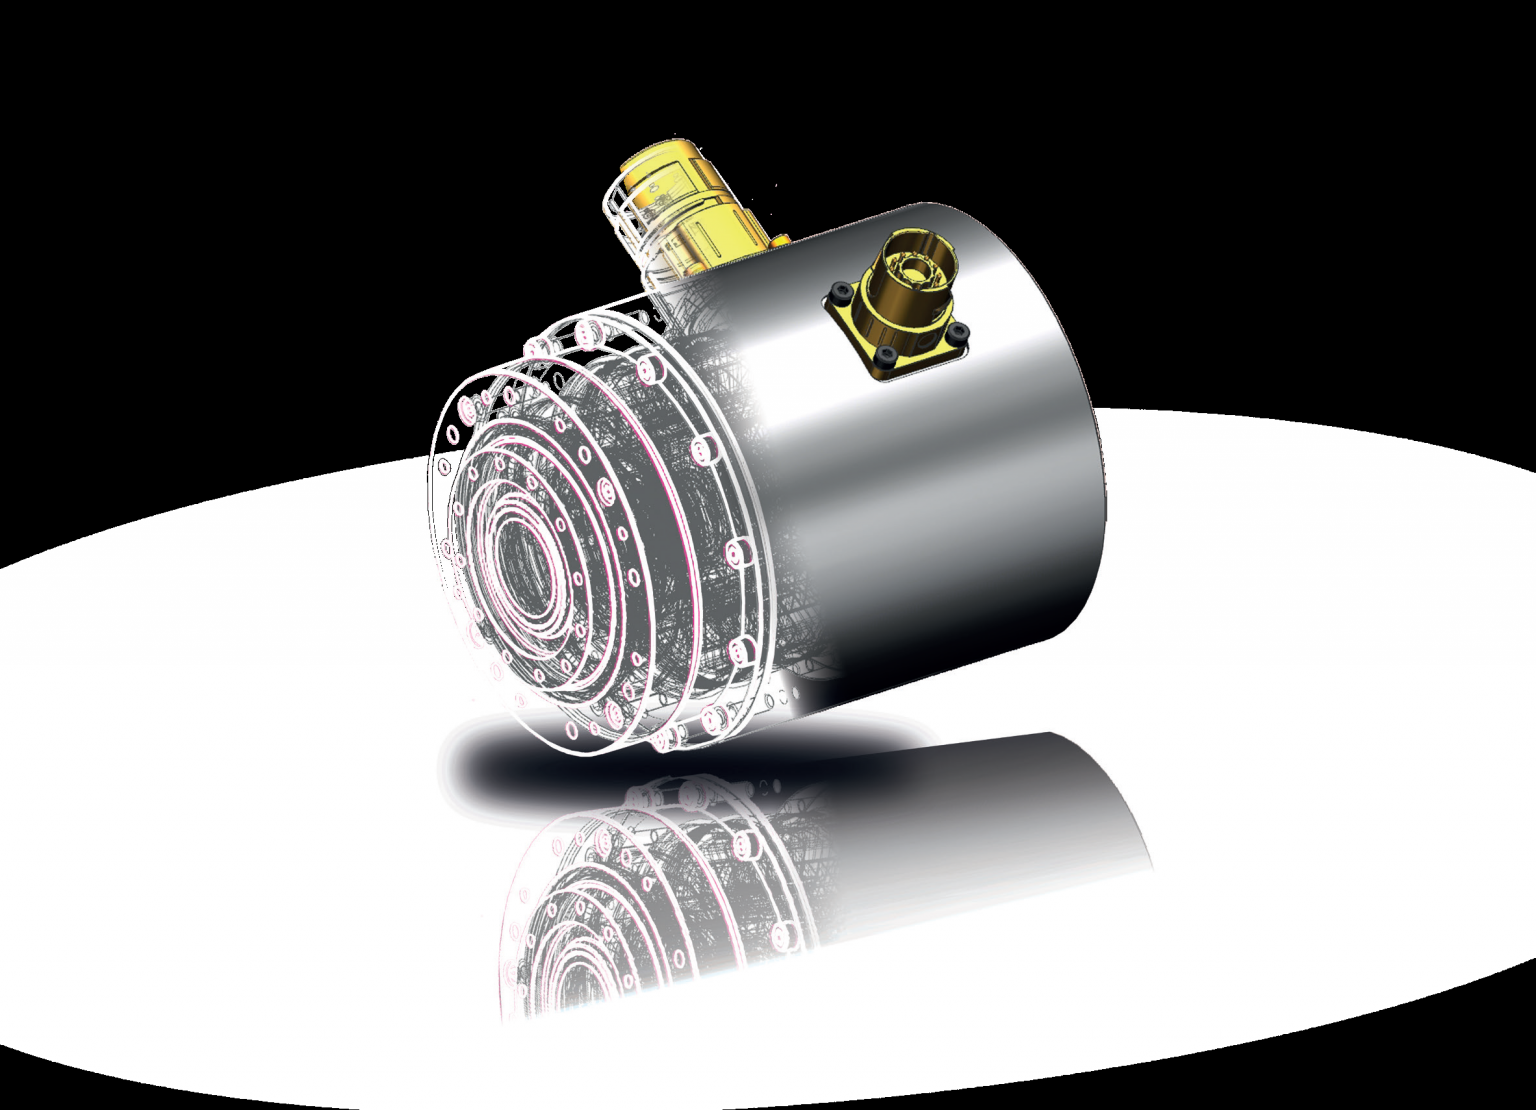 The SolutionKit is a bespoke, modular gearing range produced by Harmonic Drives